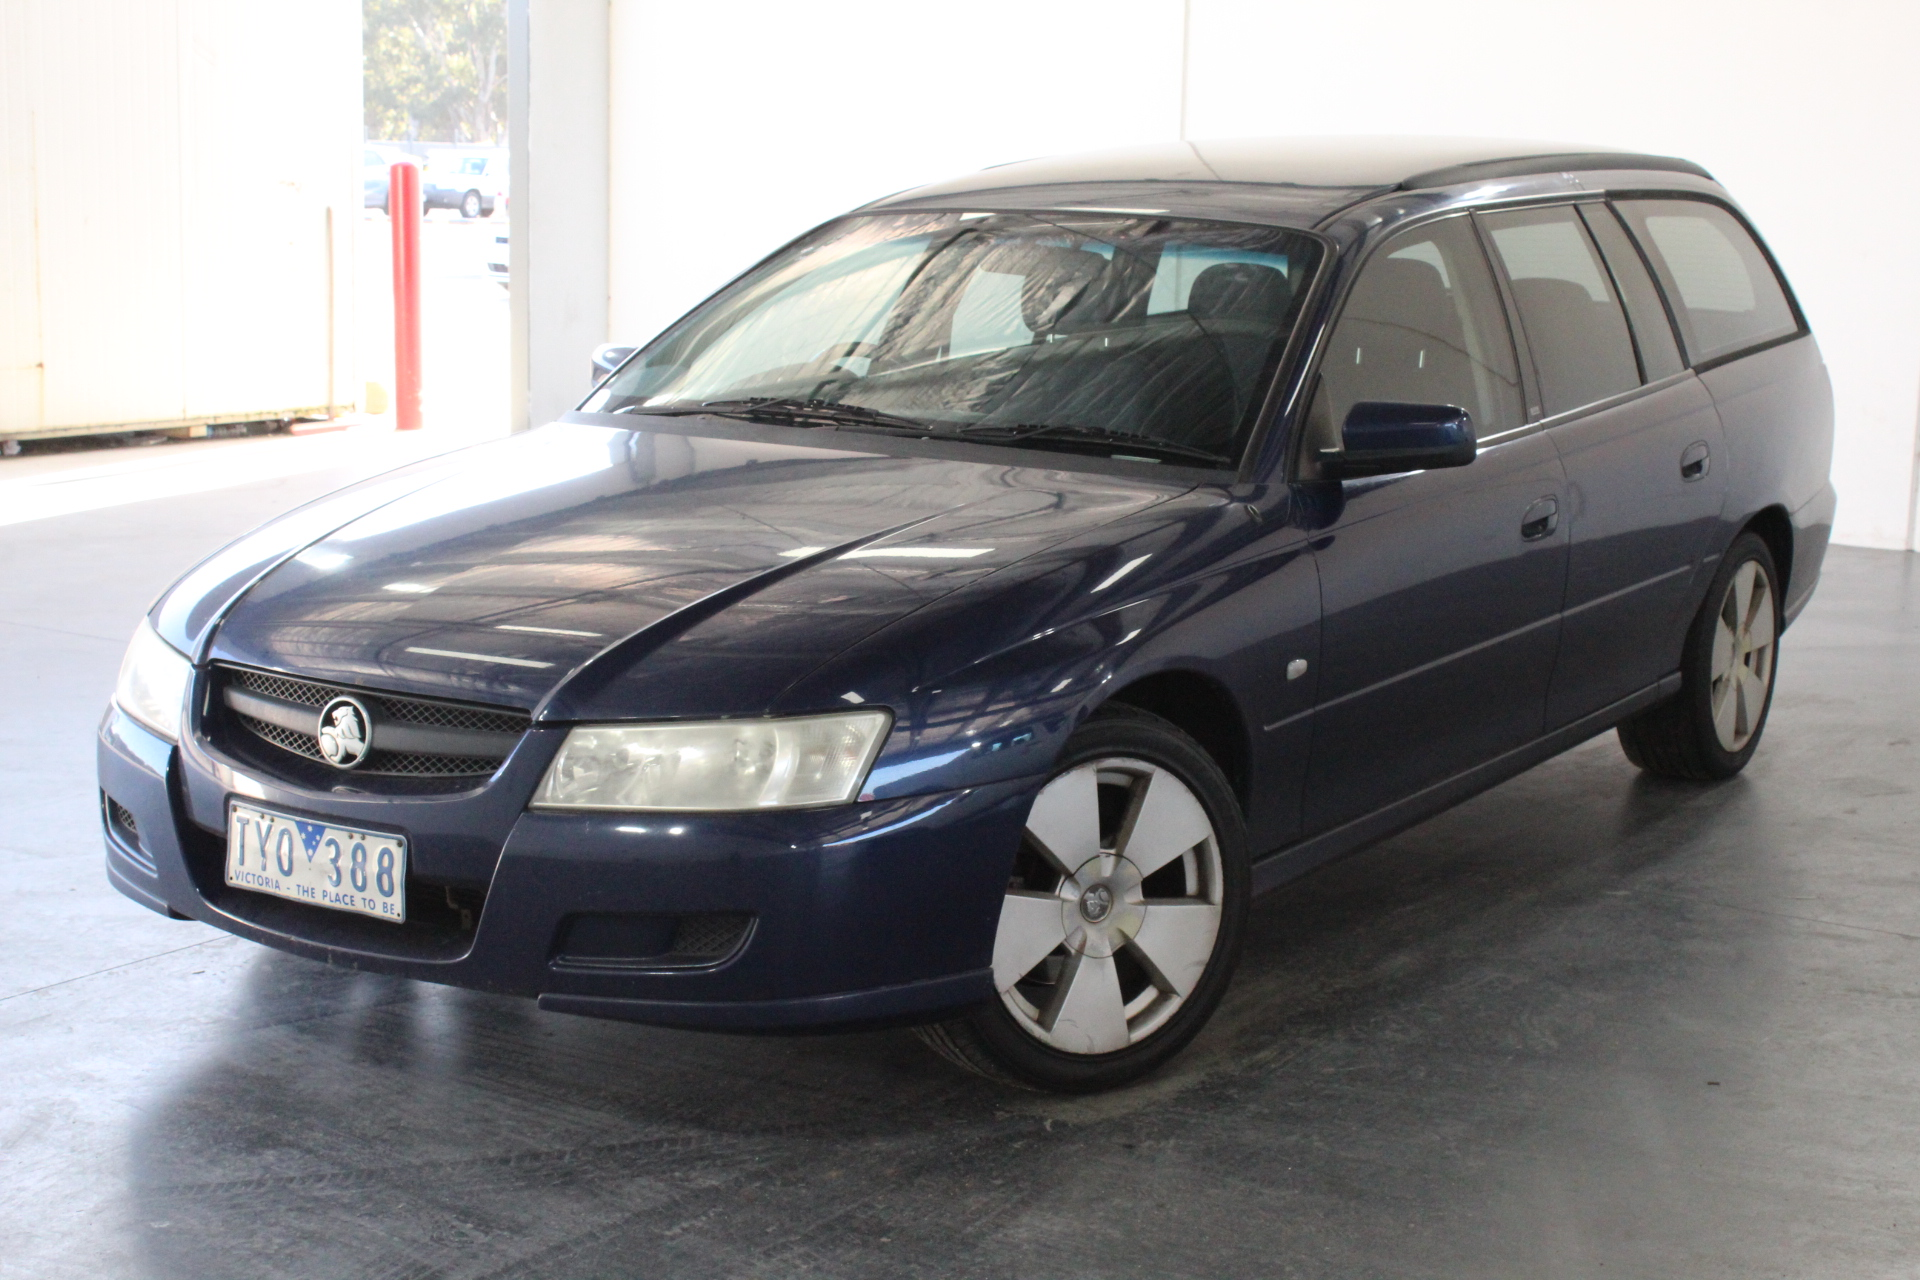 2005 Holden Commodore Acclaim VZ Automatic Wagon